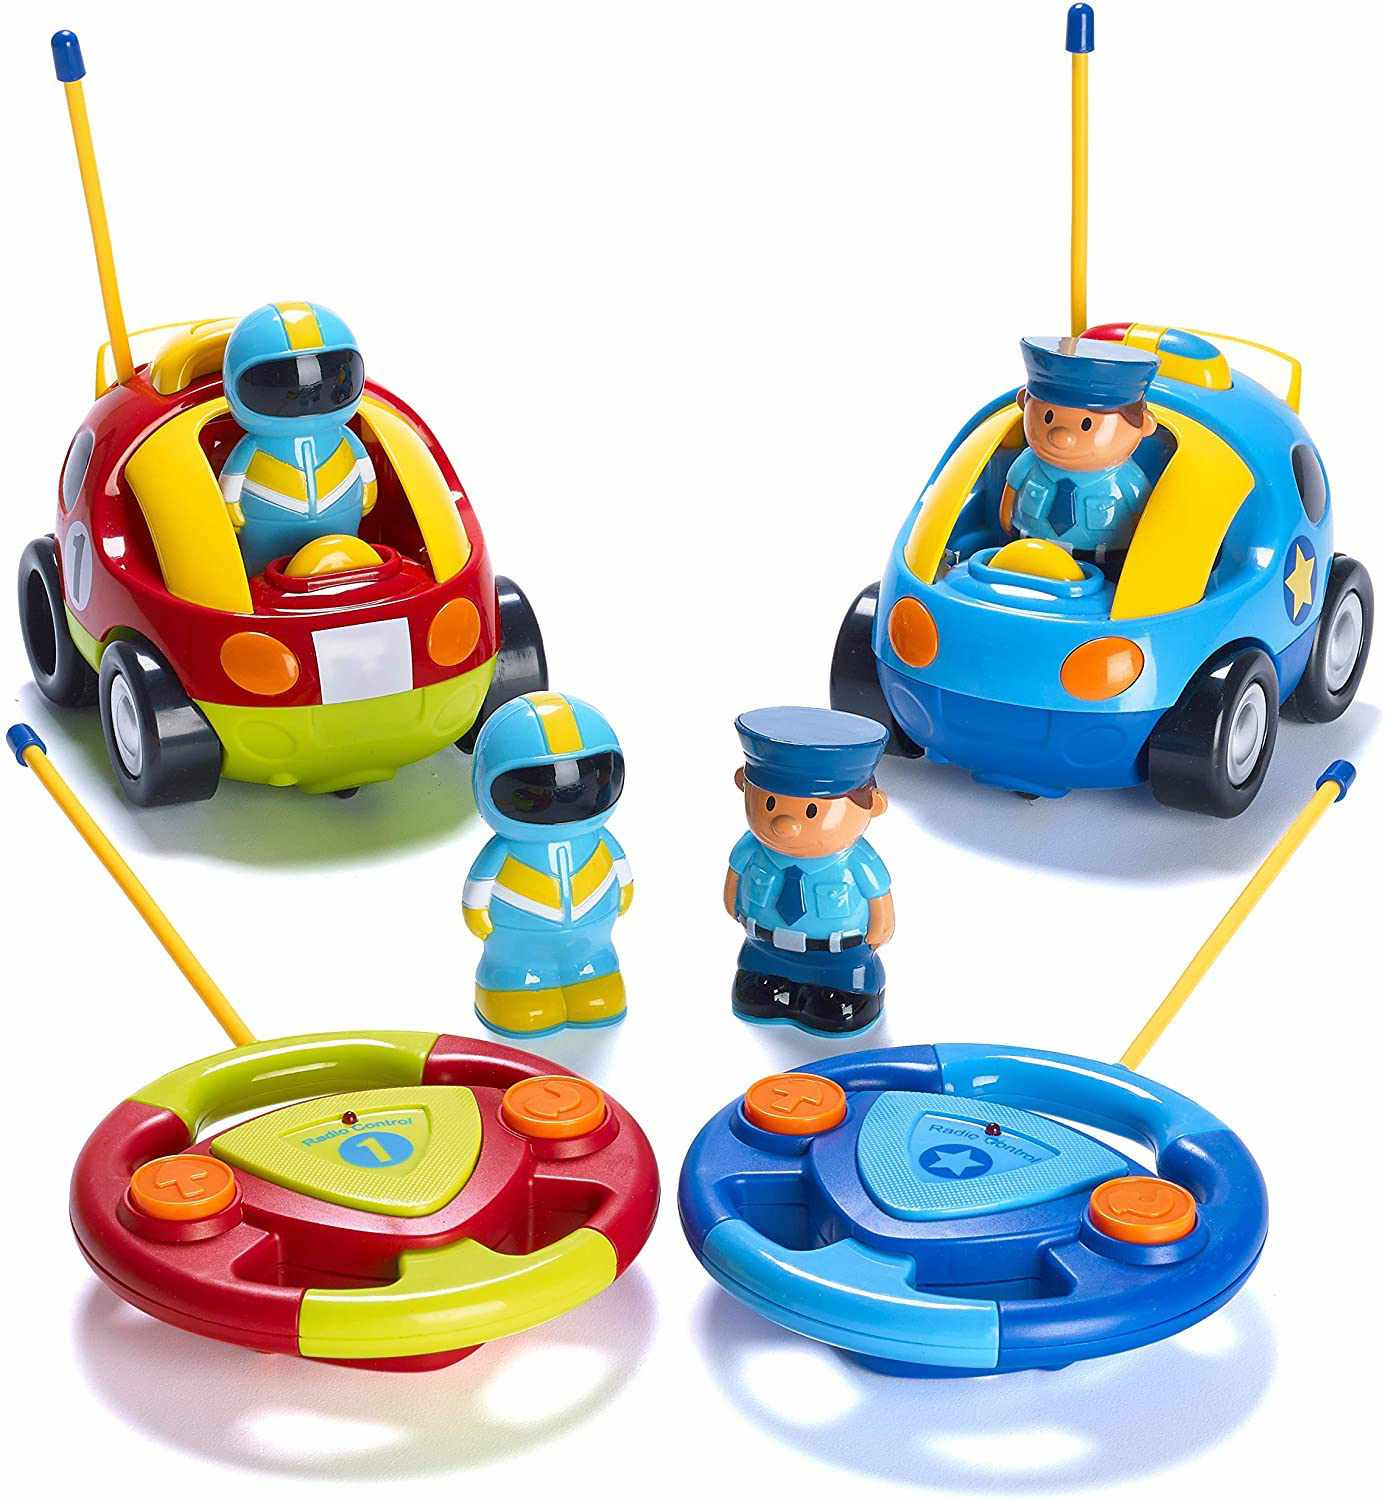 Pretex Pack of 2 Police Car and Race Car